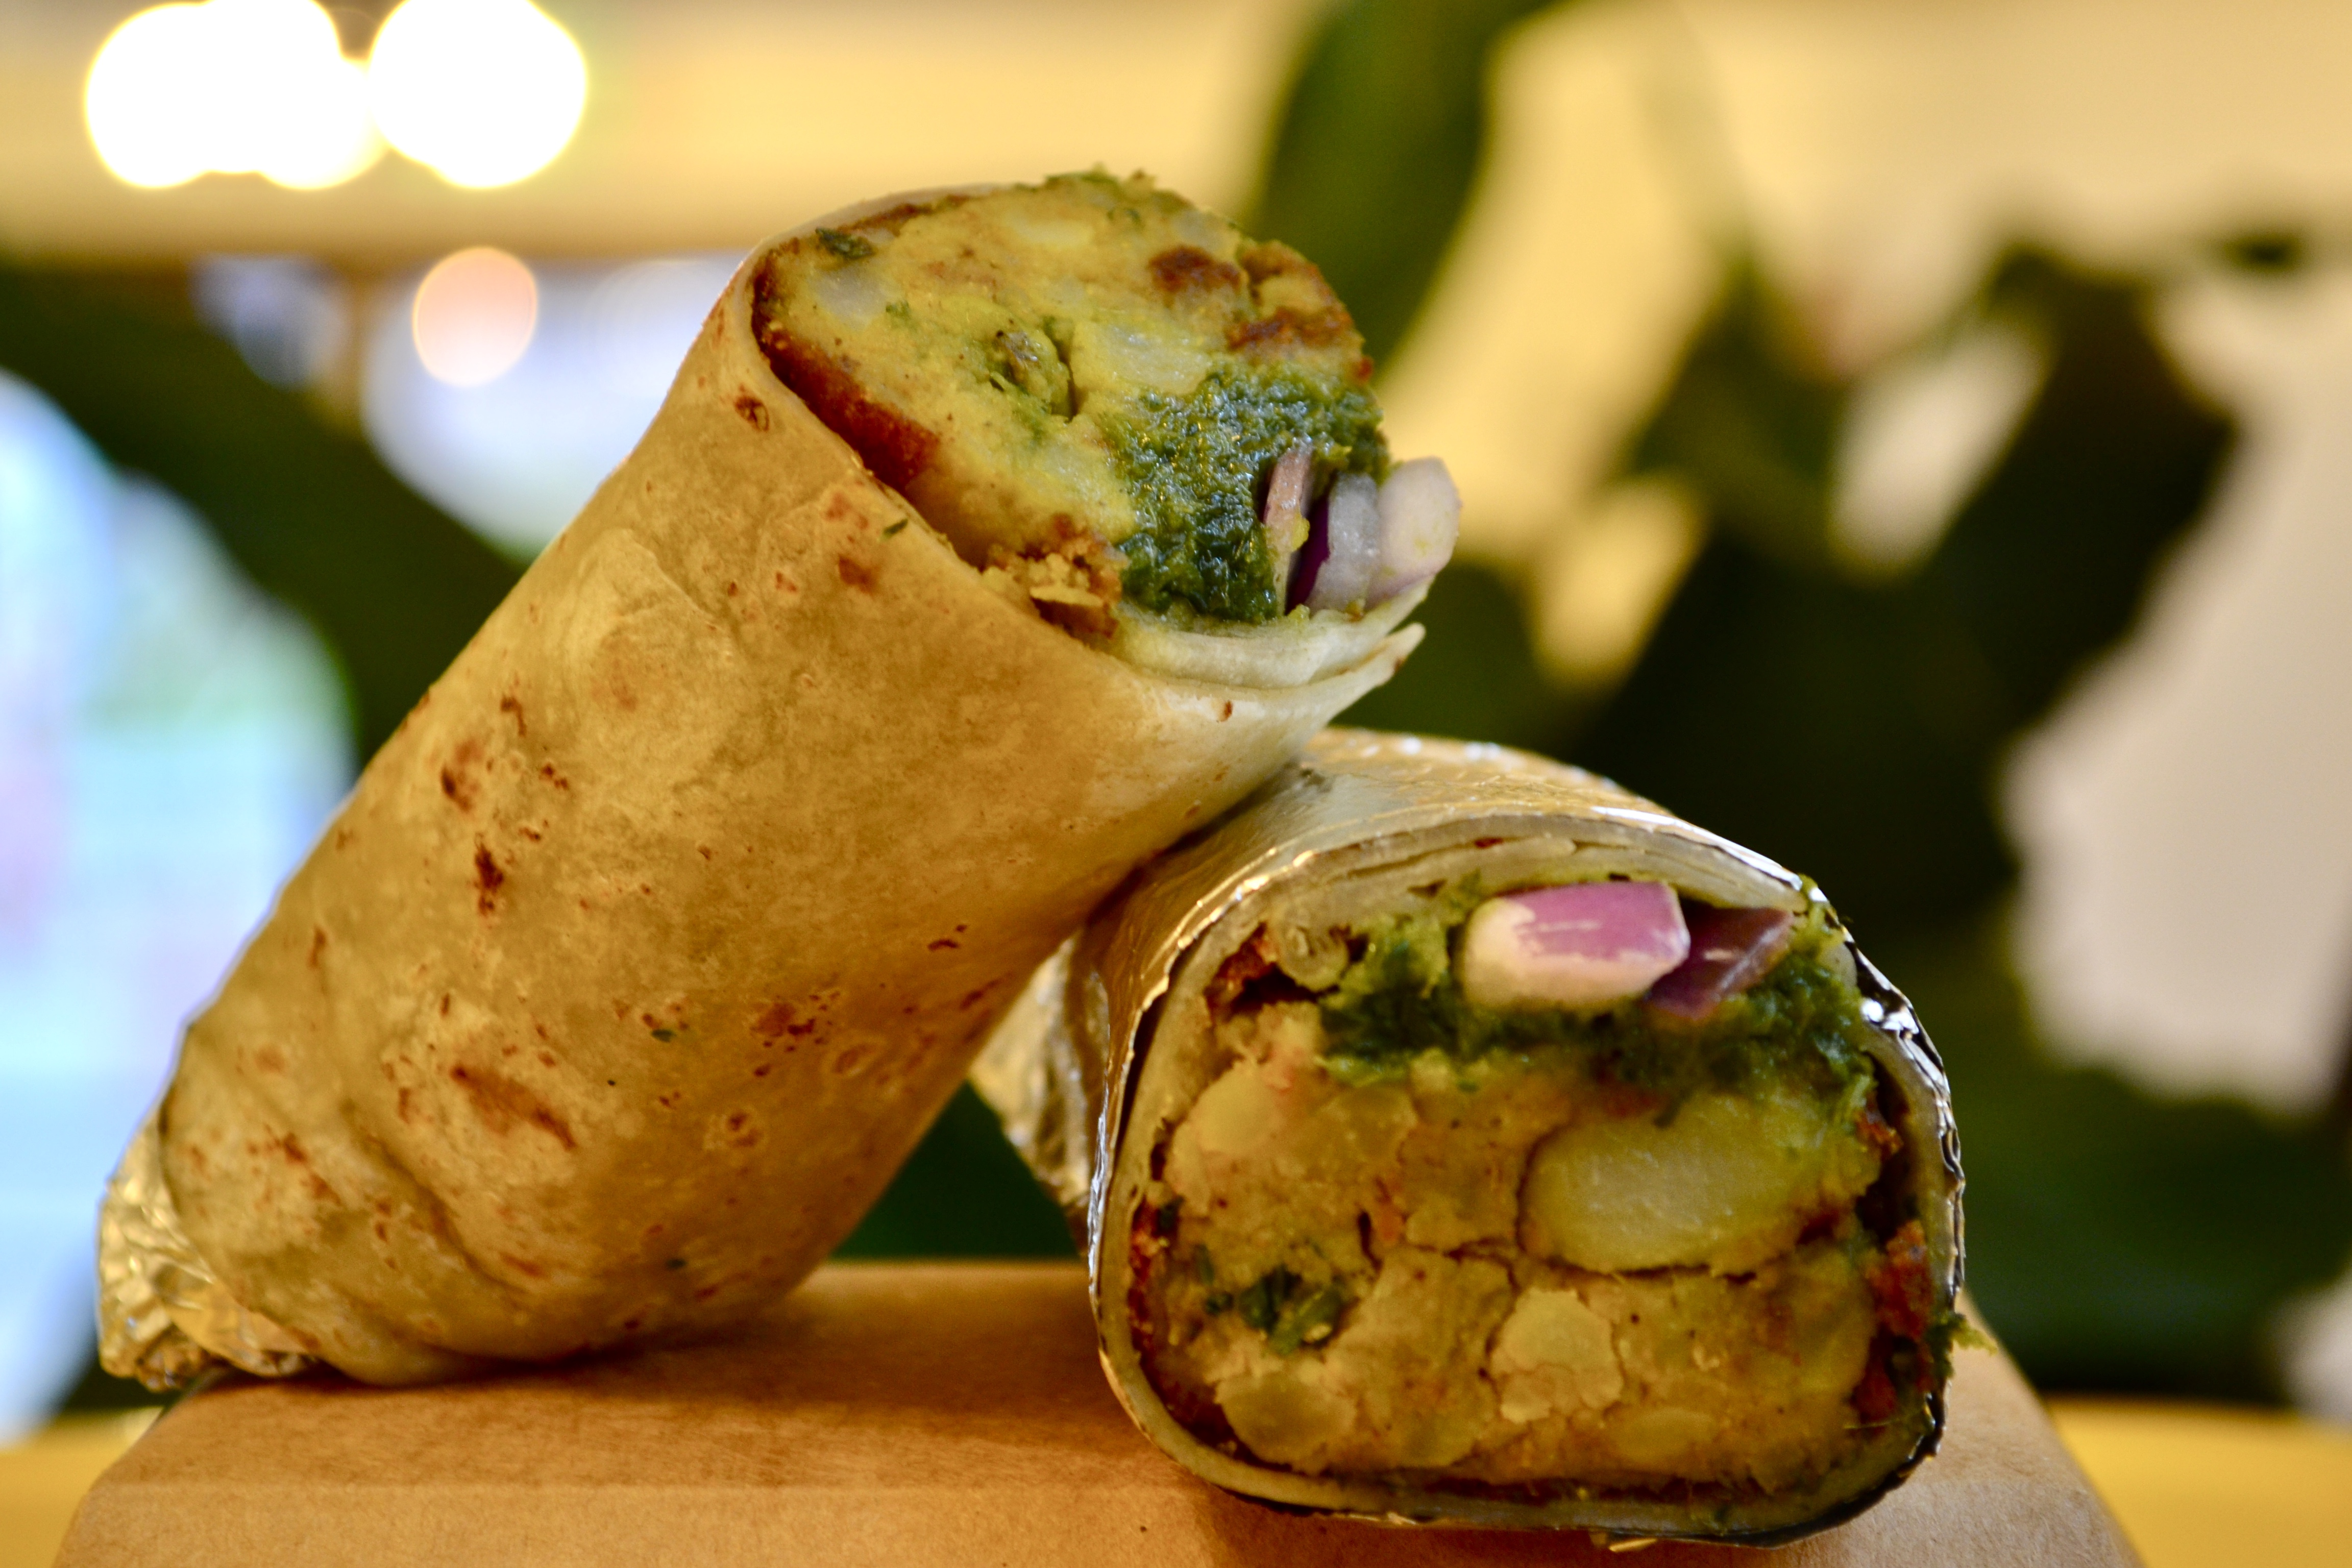 Spice Waala's aloo tikki kathi roll with one half stacked on the other